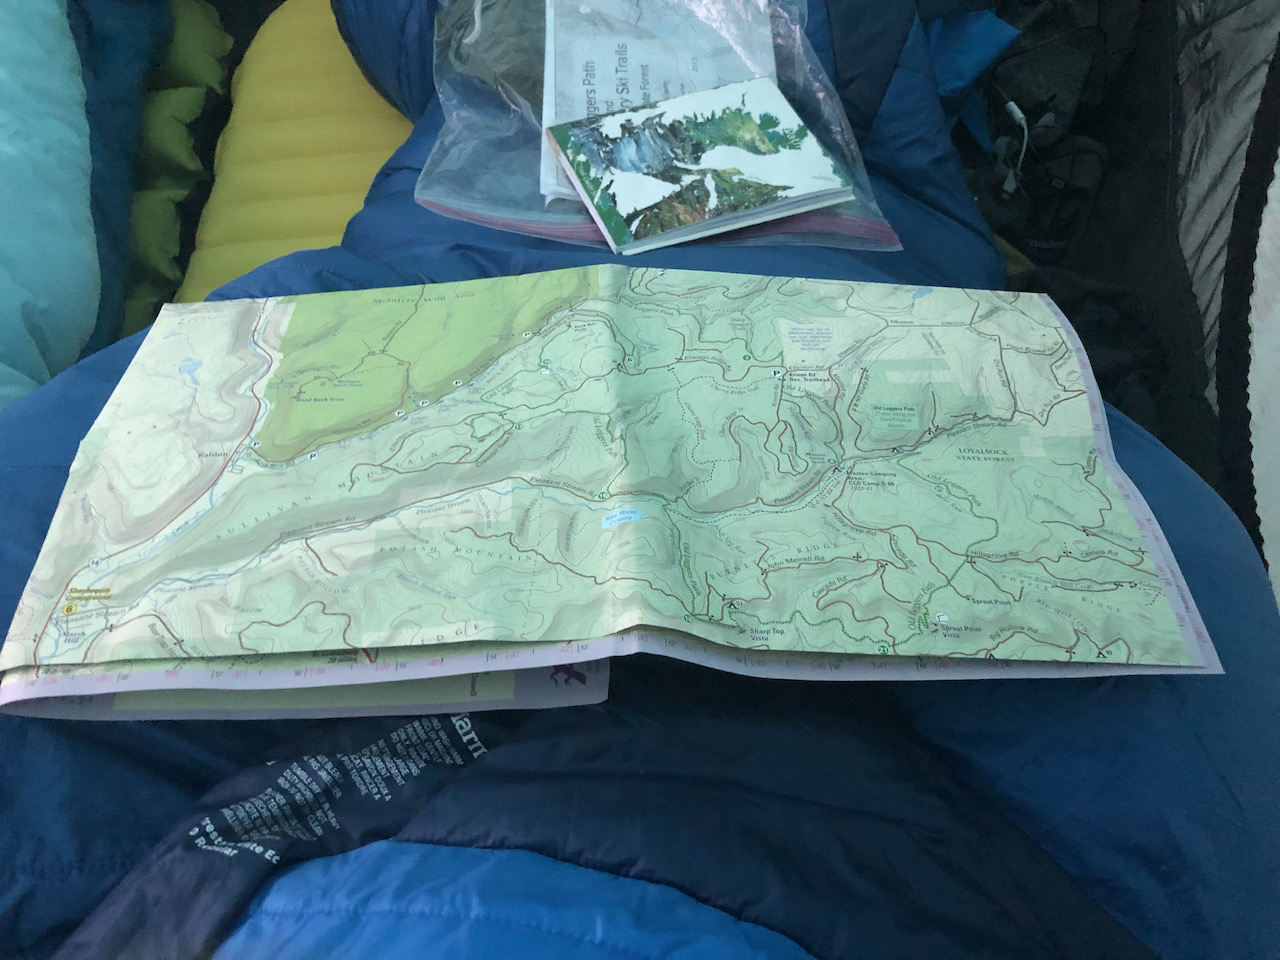 Photo of map and guide book on a sleeping bag